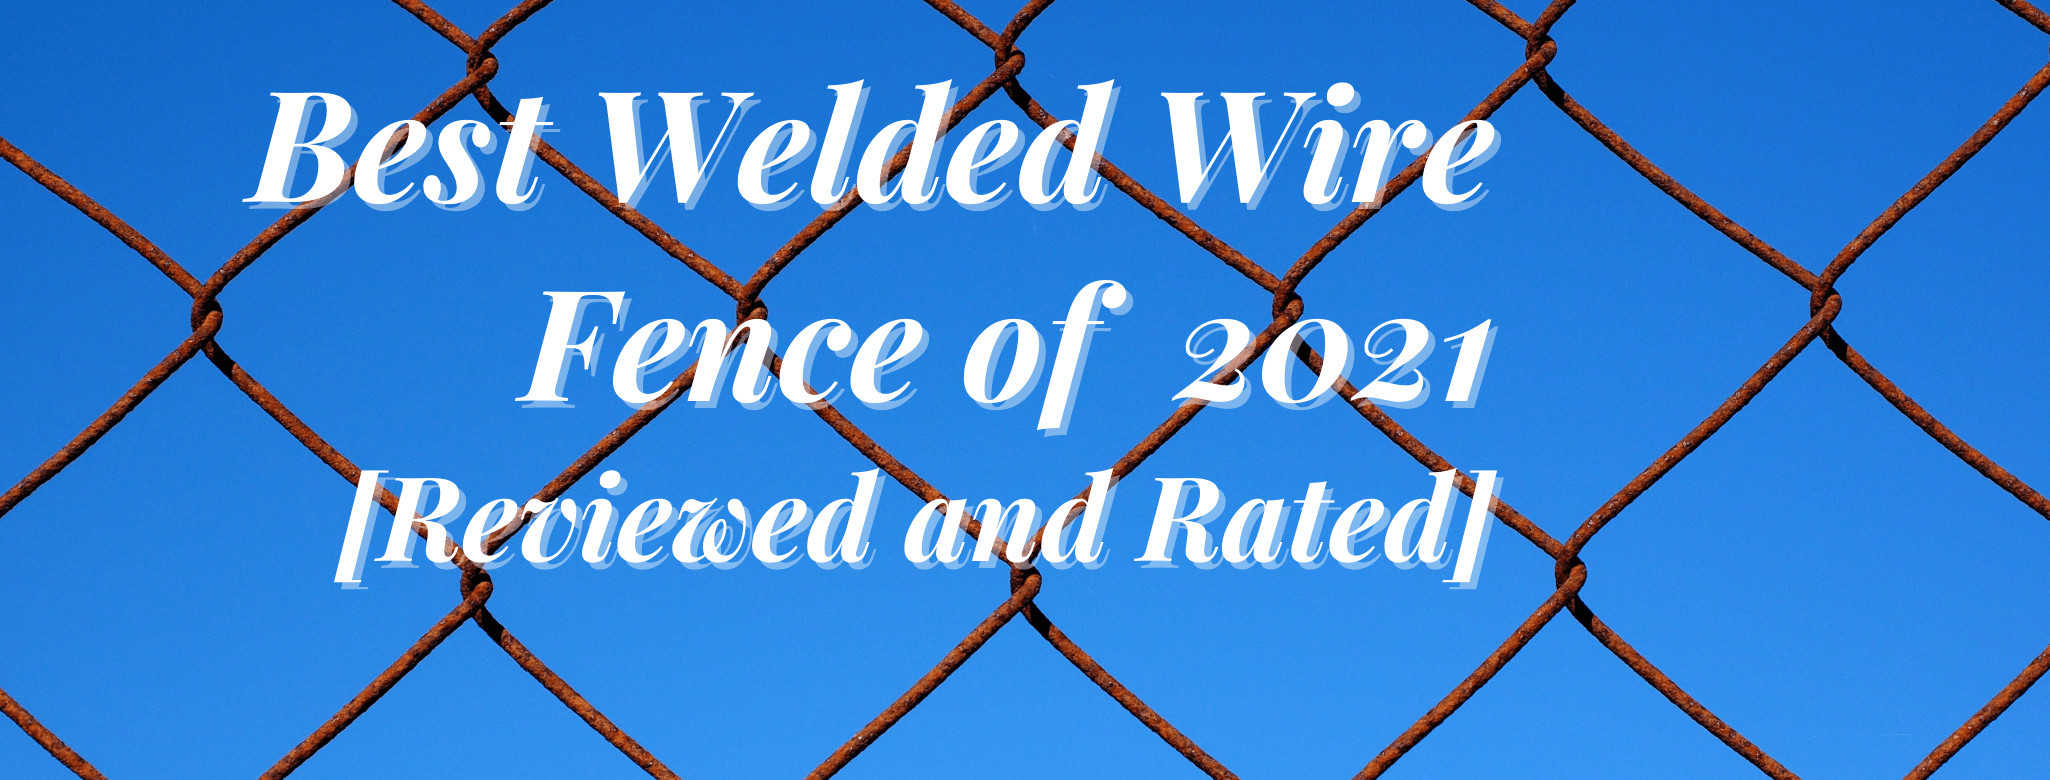 best welded wire fence